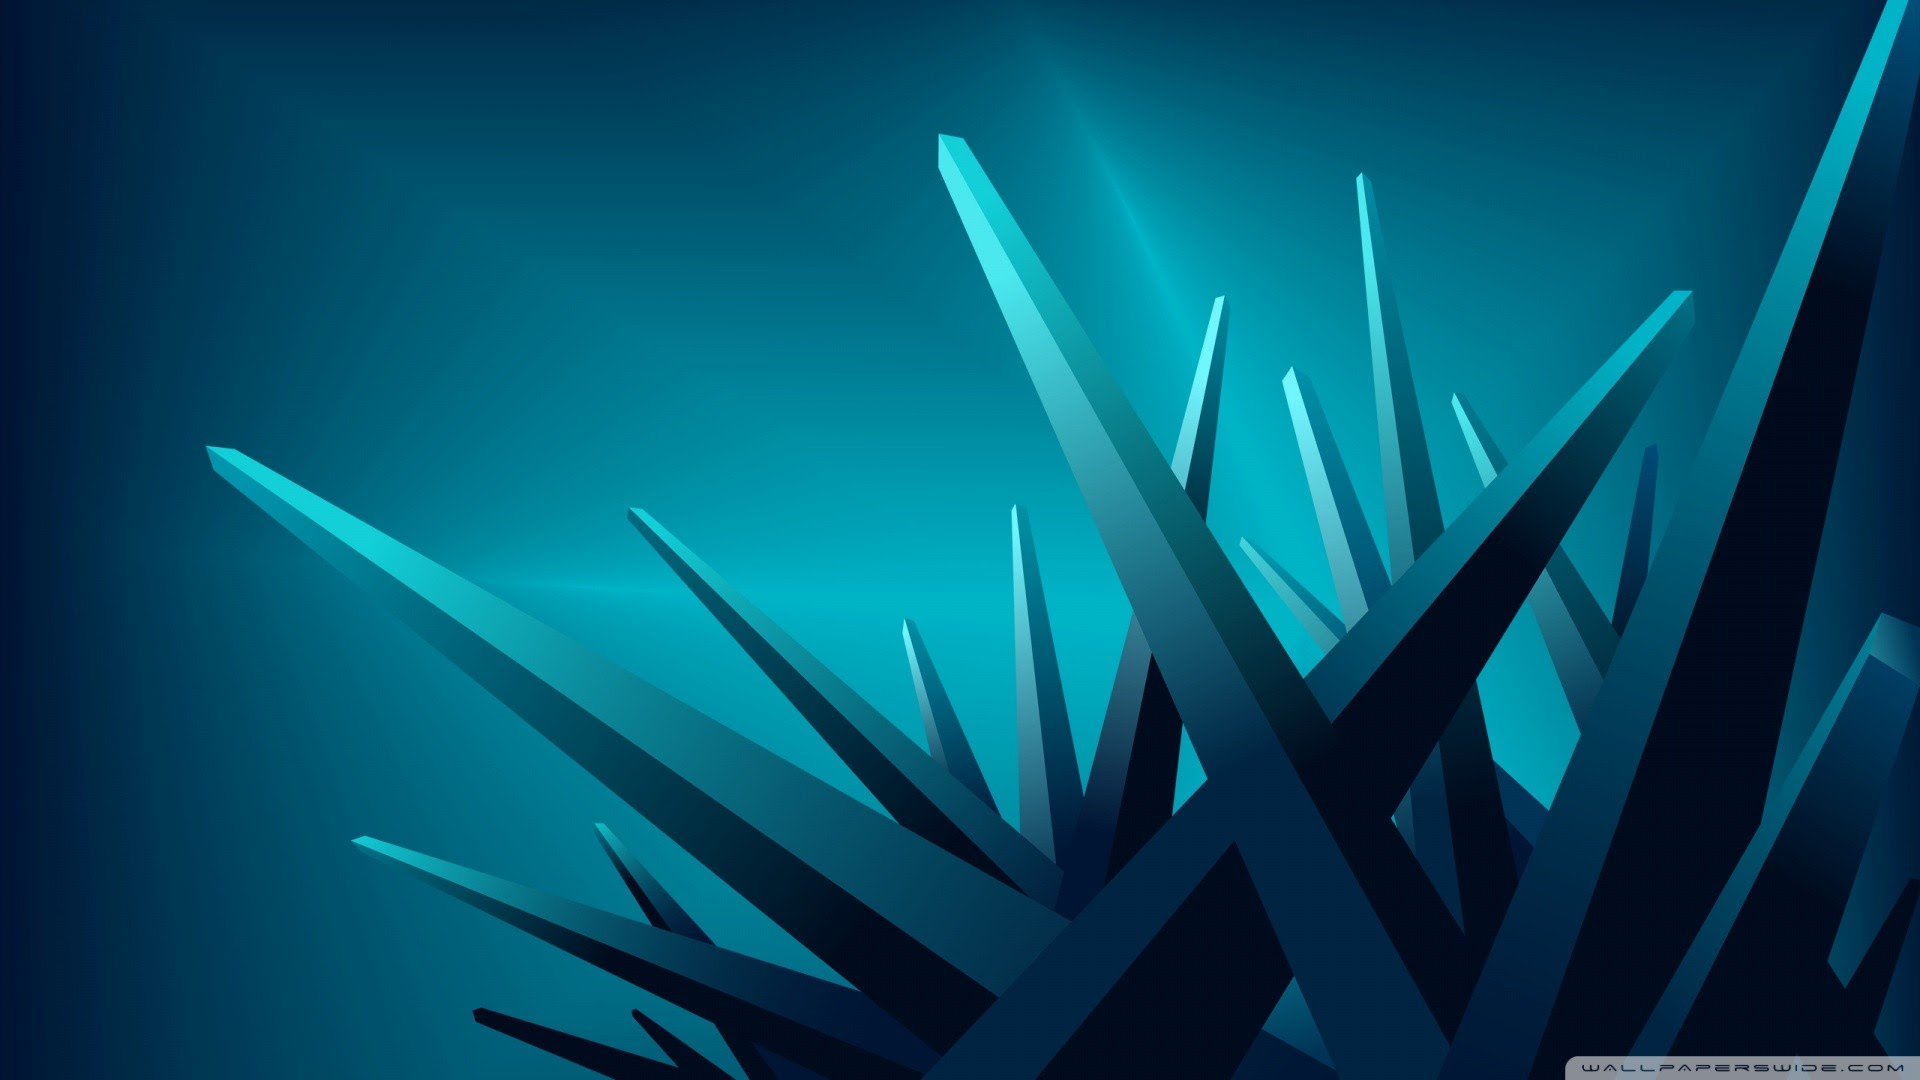 Blue HD 1920x1080 Wallpaper (79+ images)